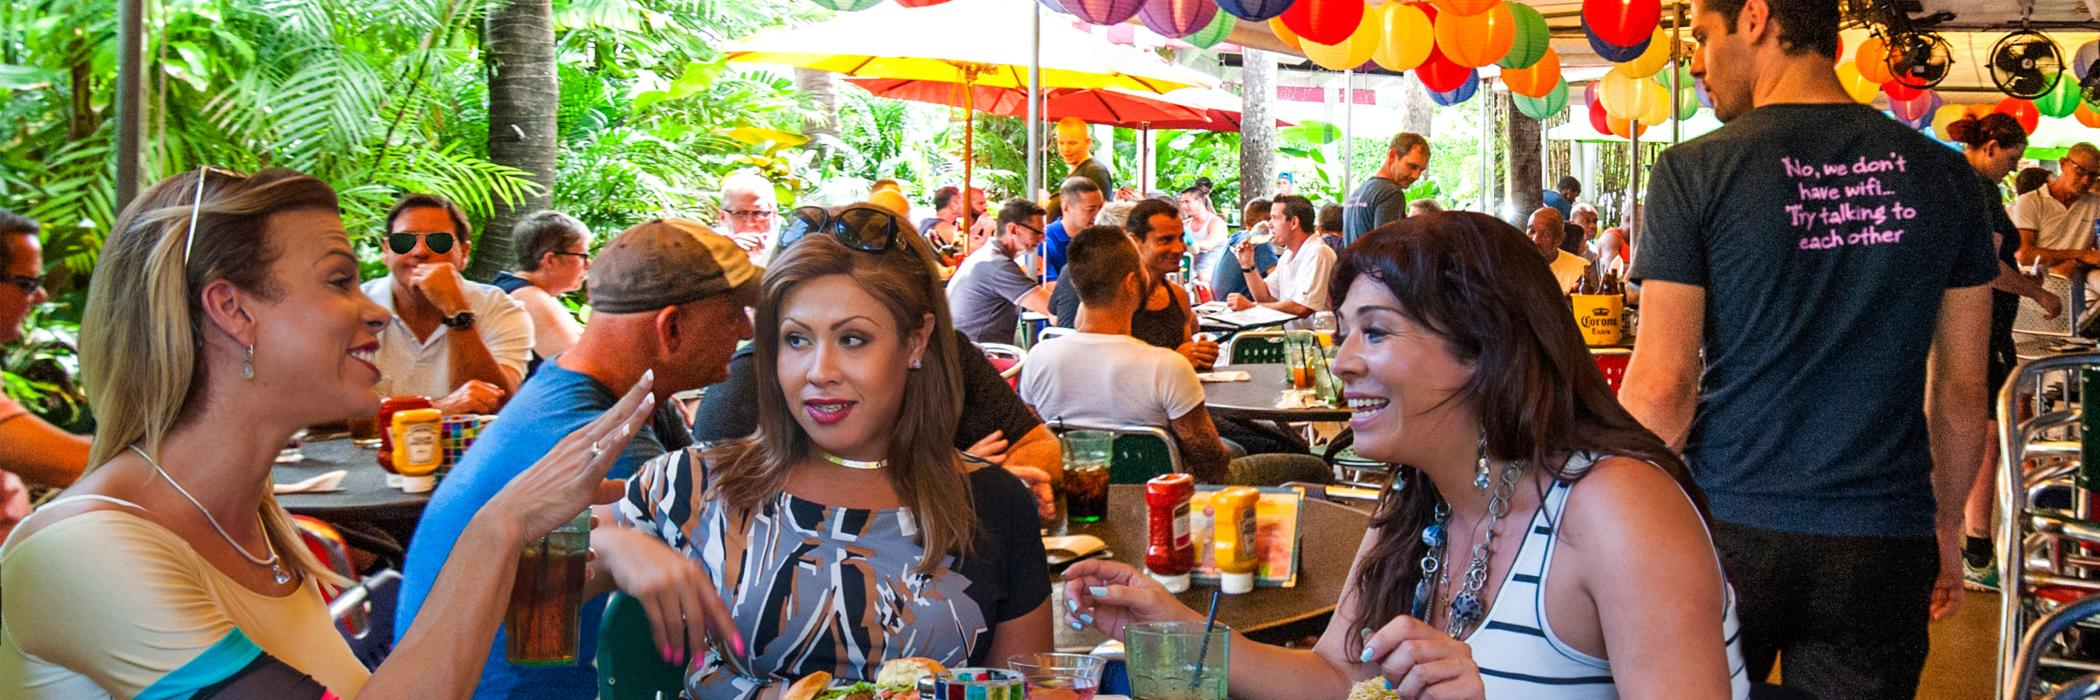 Transgender women enjoy a meal at Rosie's Bar & Grill in Wilton Manors, FL